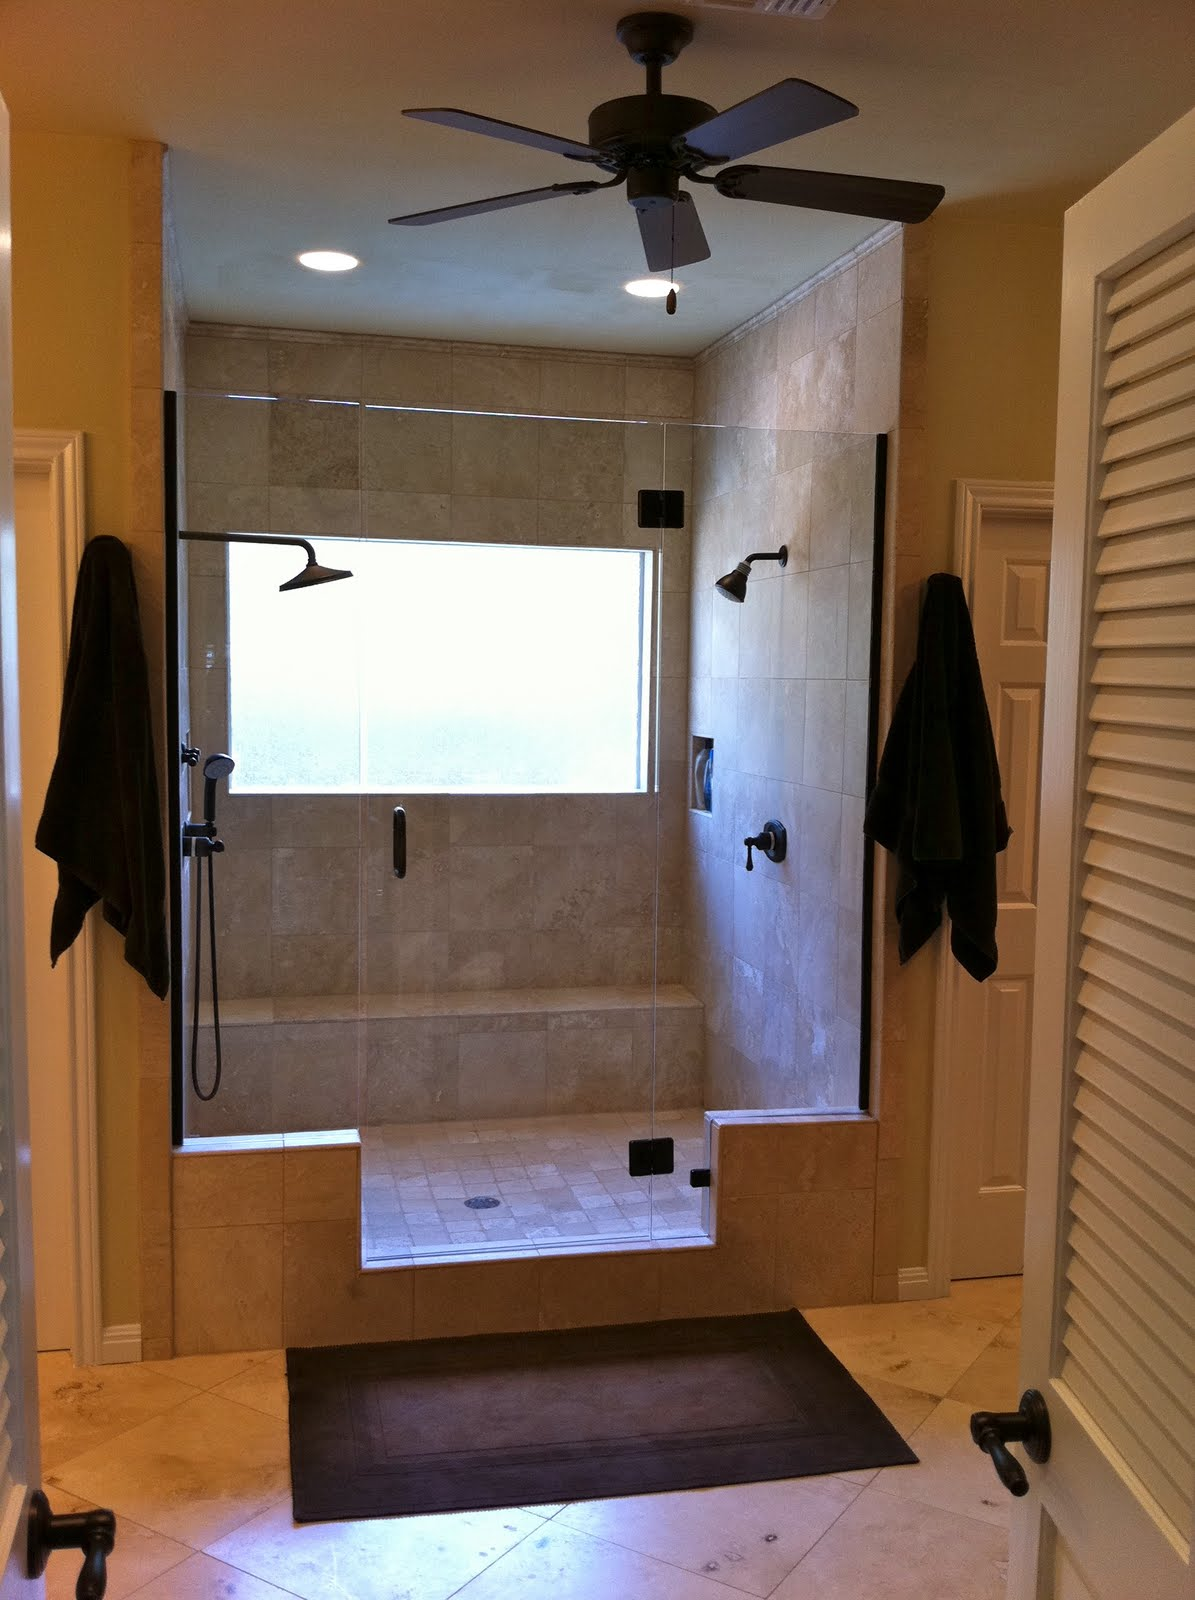 Bathroom Ideas With Double Shower : The cul de sac welcome to my home master bath makeover